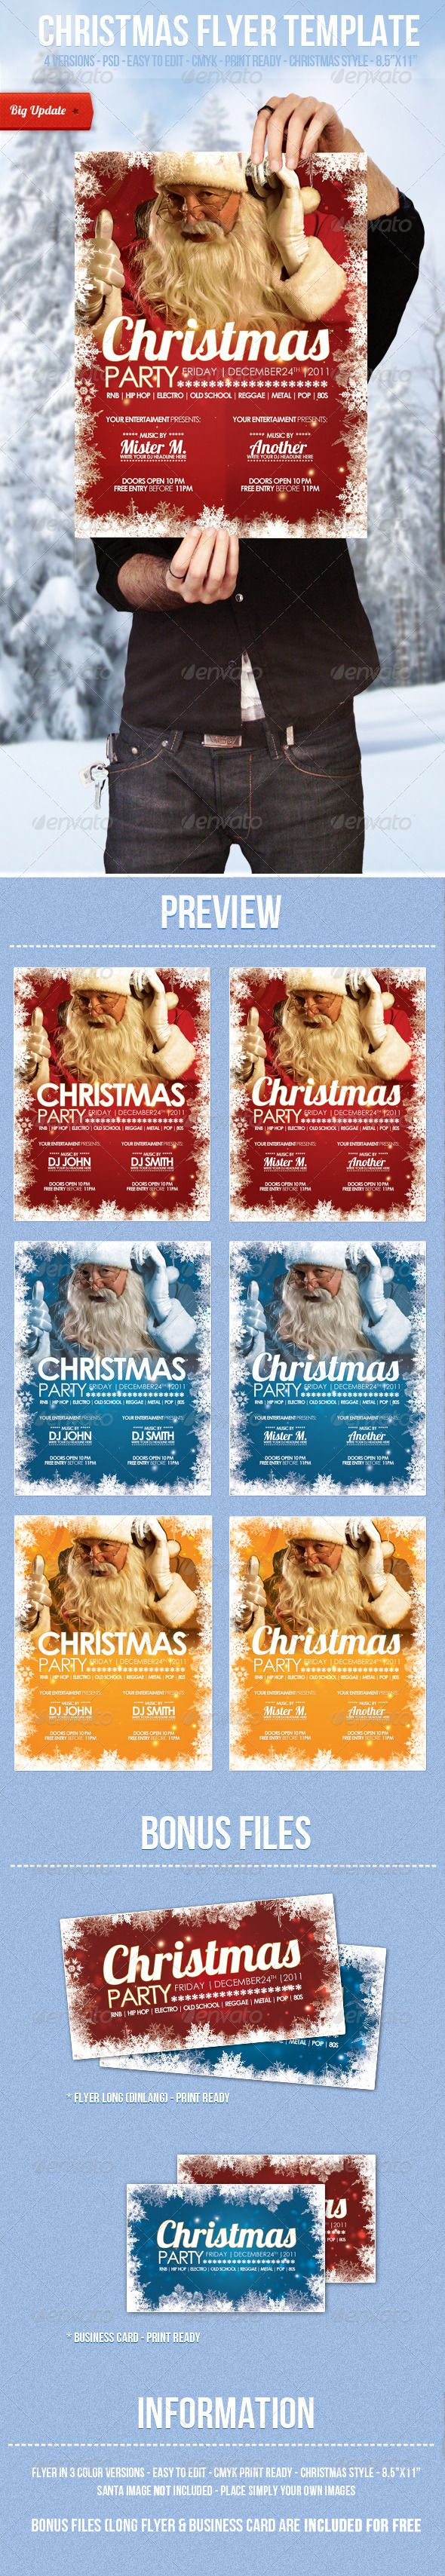 company christmas party invitation templates%0A Christmas  Flyer Template